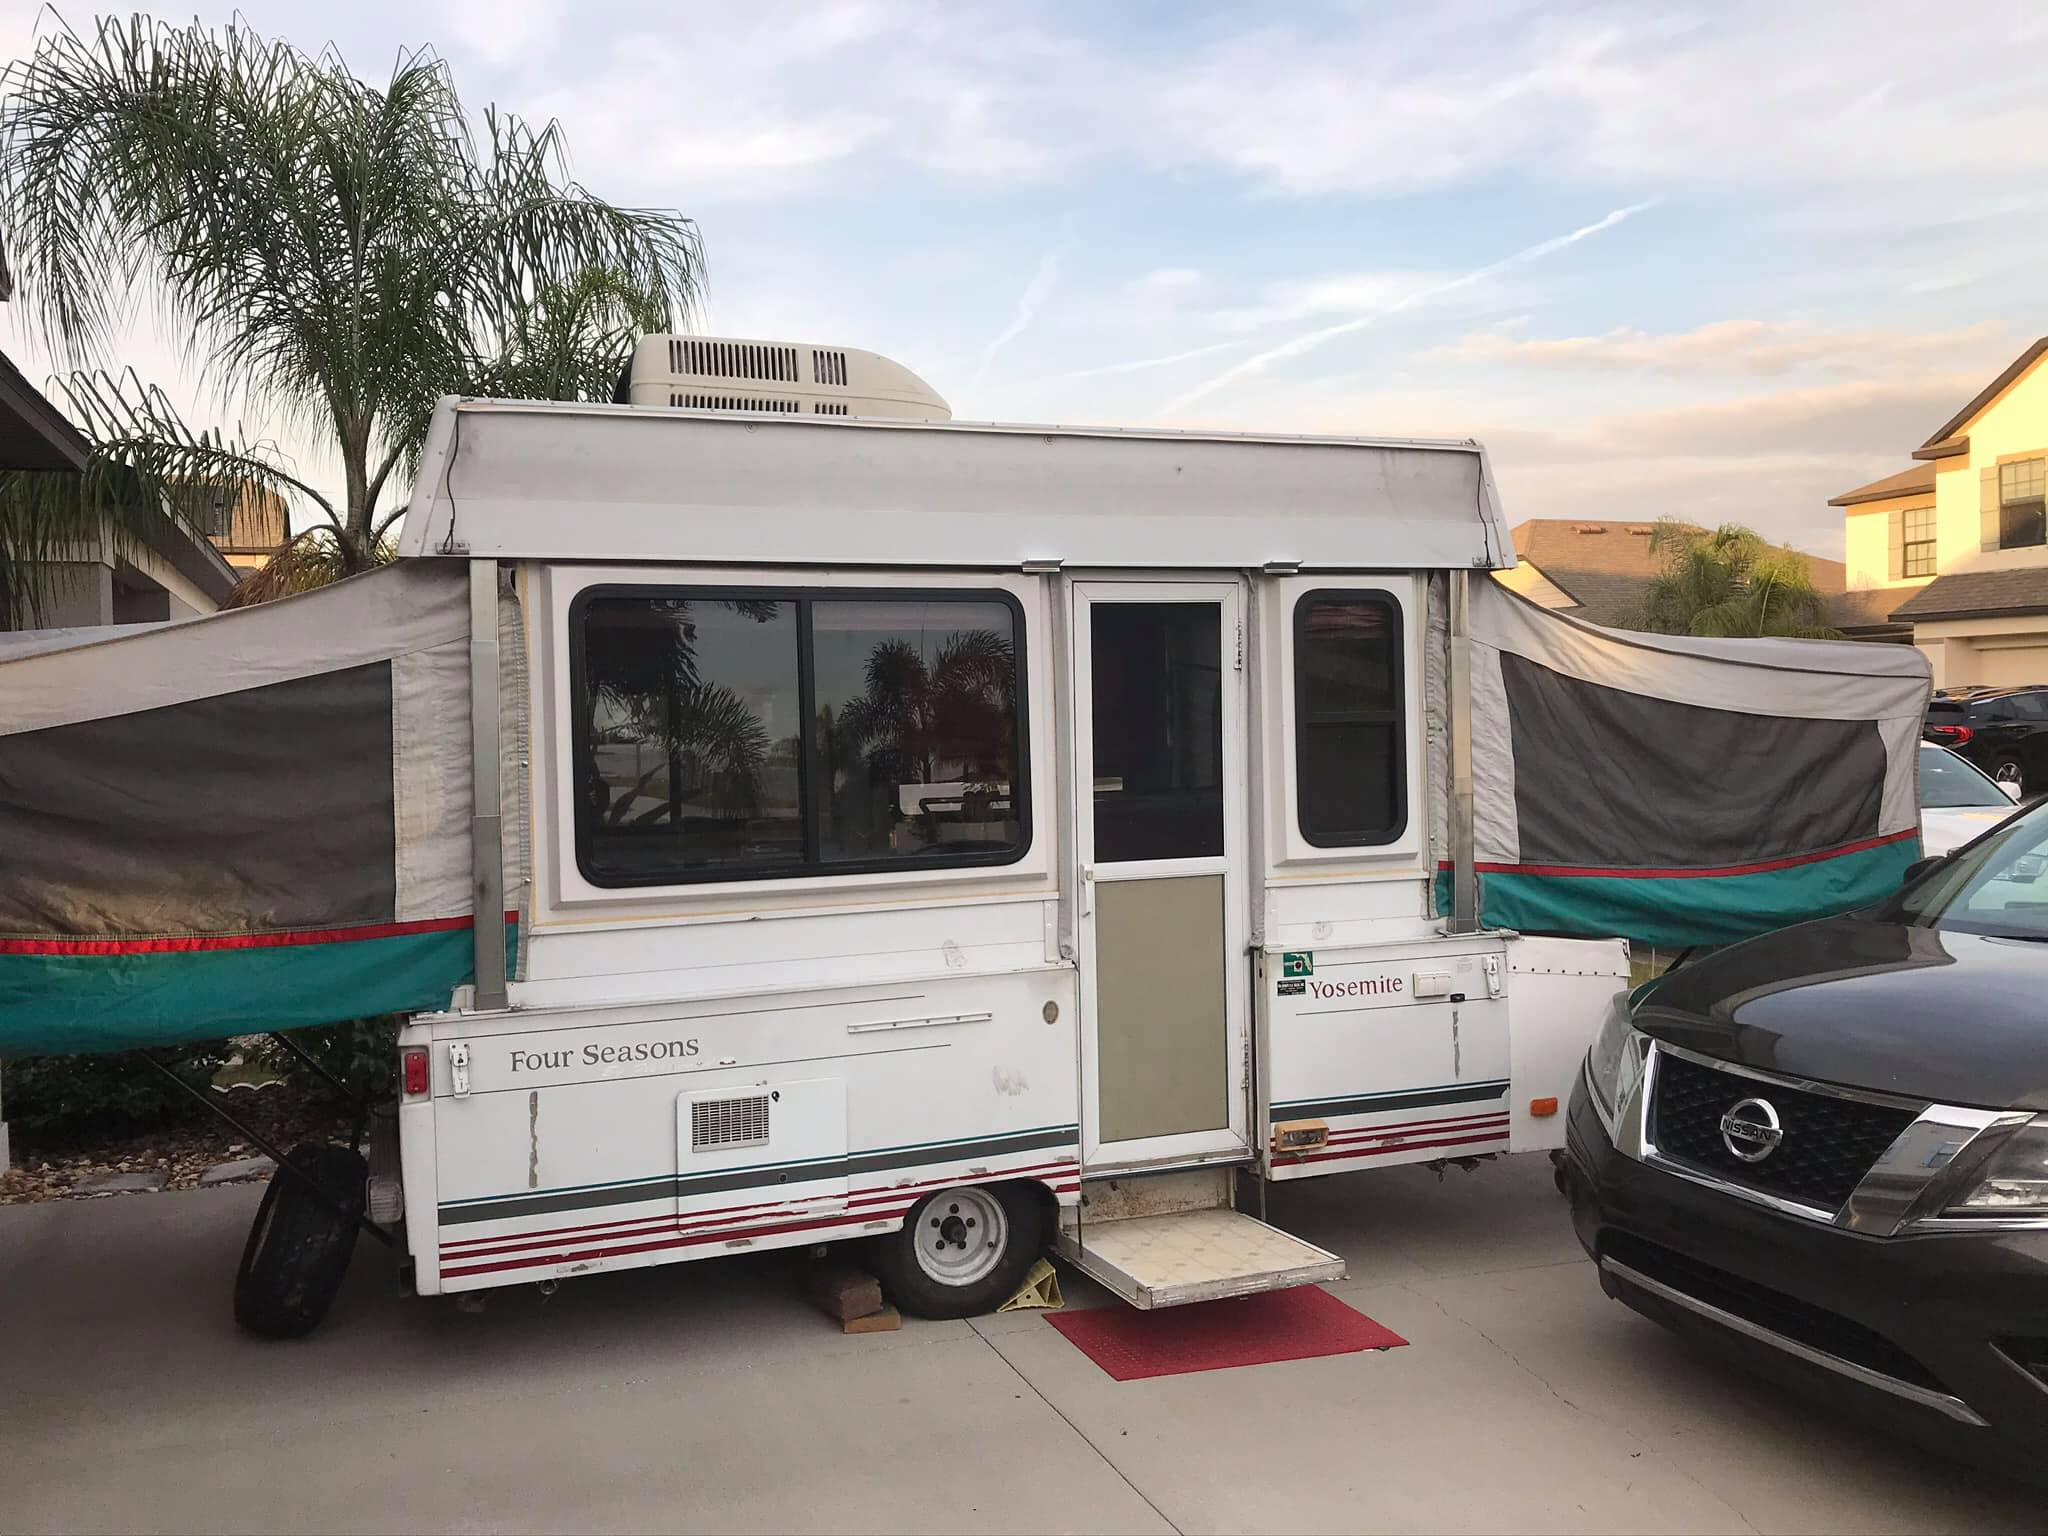 This is what the camper will look like when full assembled . Coleman Yosemite- Four Seasons 1994